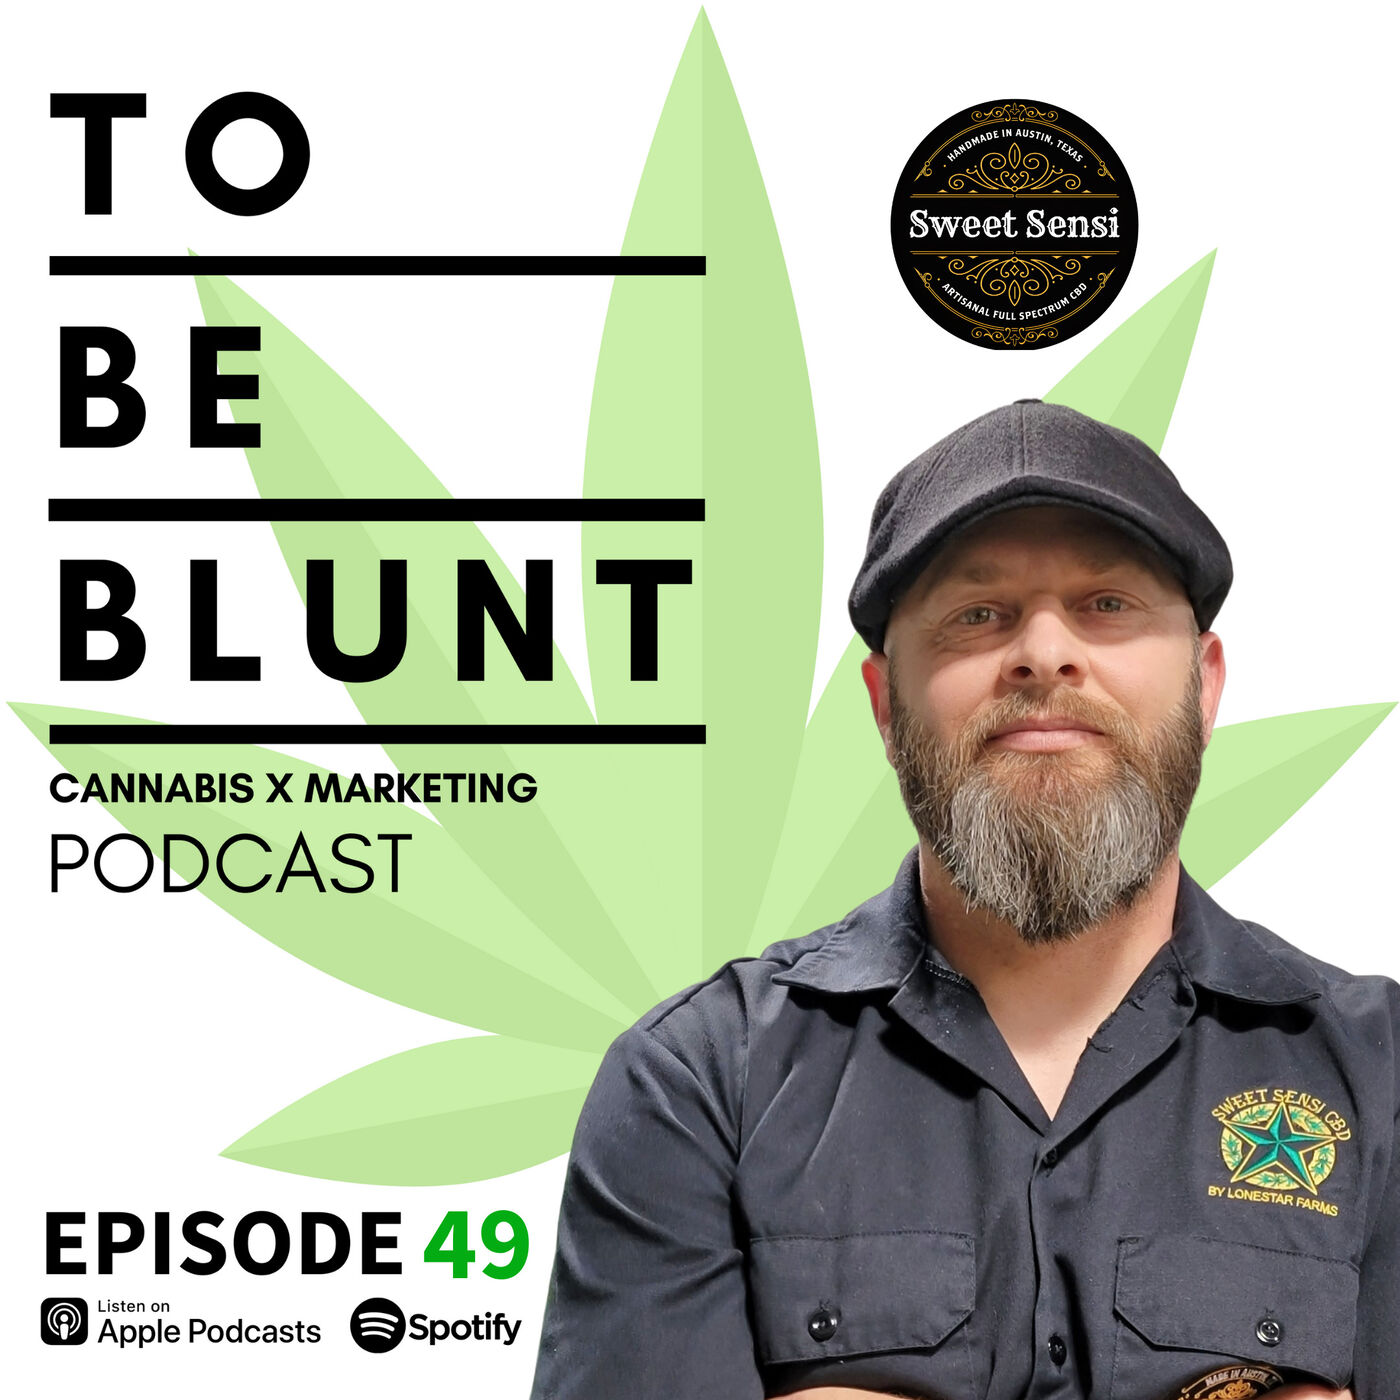 049 Manufacturing the Artisinal Cannabis Experience in Texas with Greg Autry of Sweet Sensi